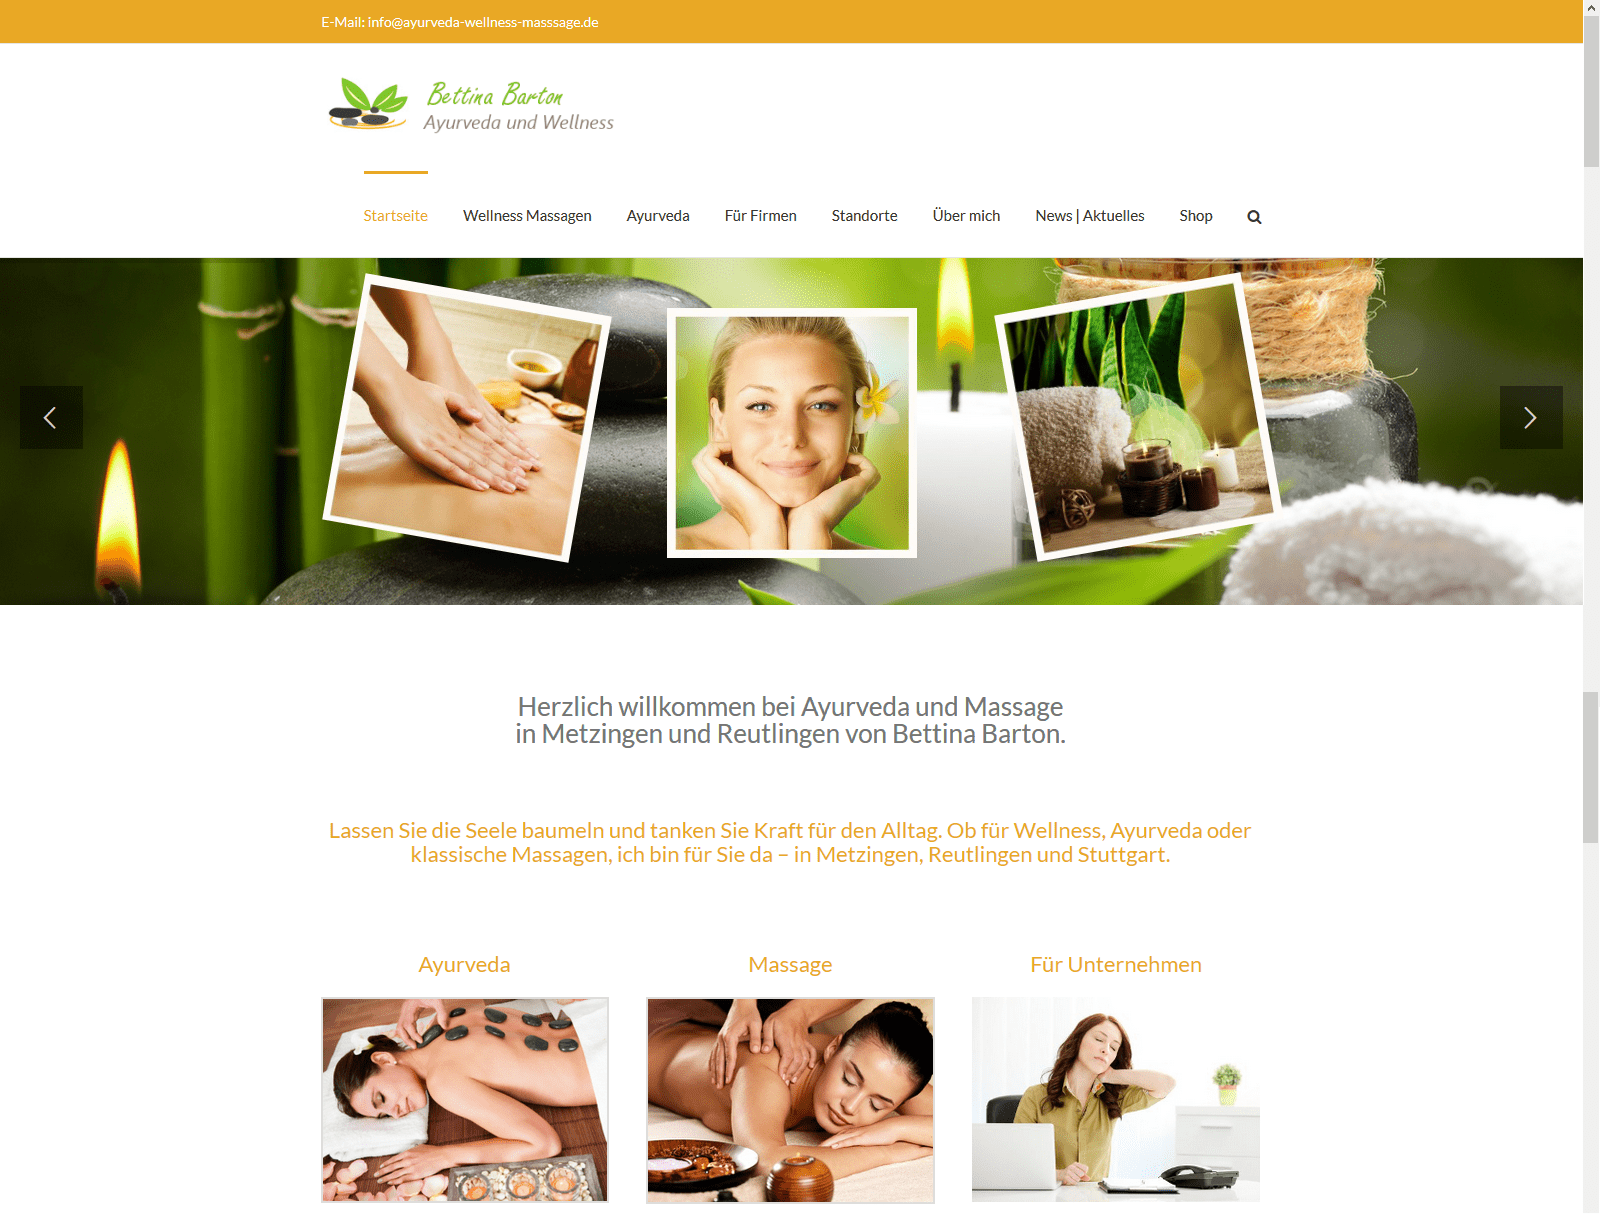 Ayurveda-wellness-massage-teil